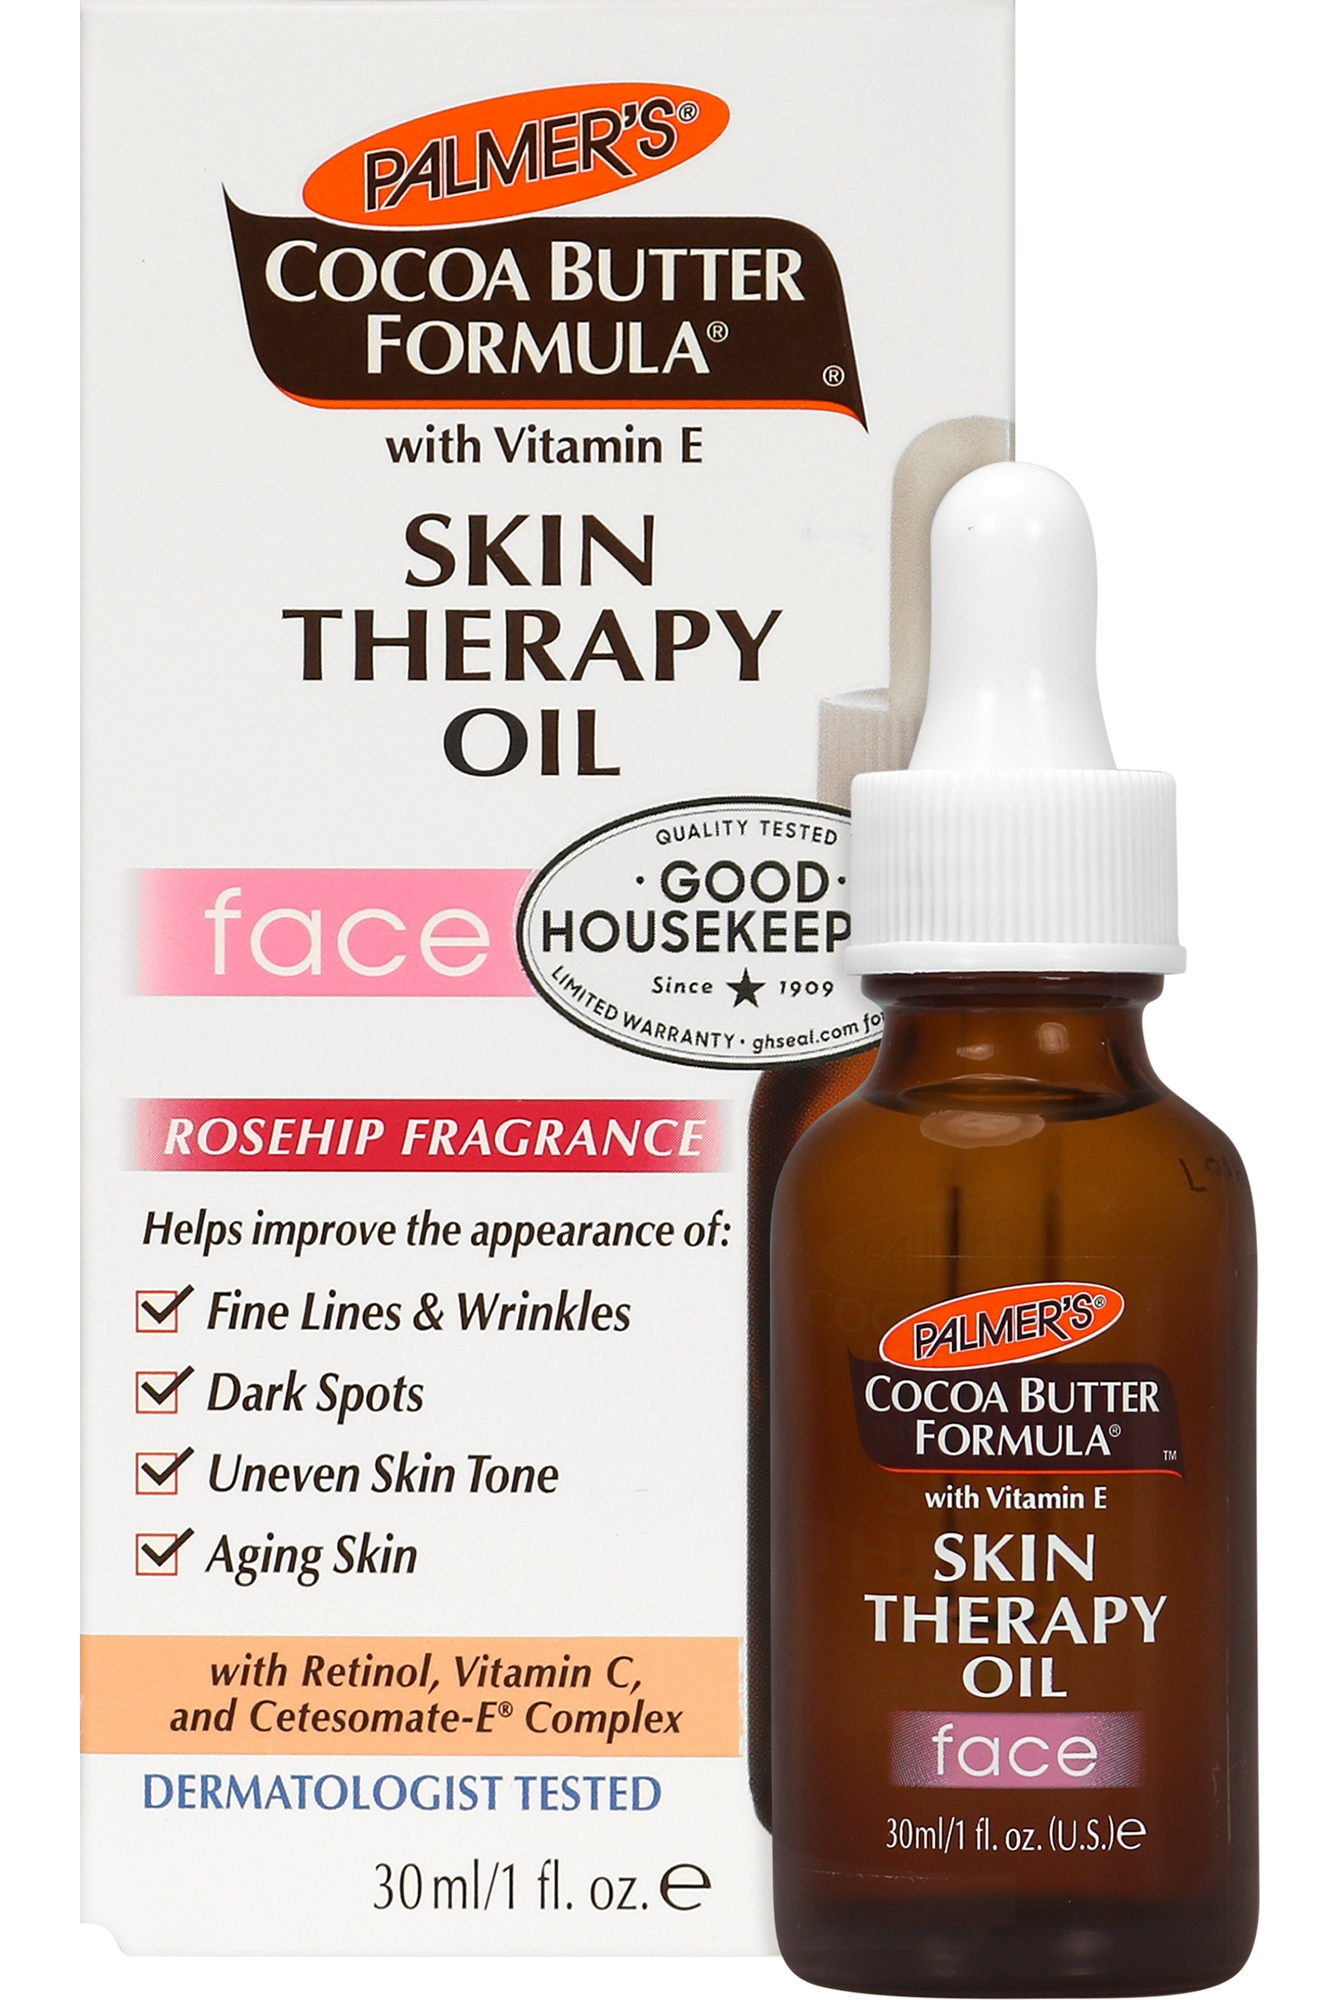 Palmer's Cocoa Butter Moisturizing Skin Therapy Oil For Face With Vitamin E